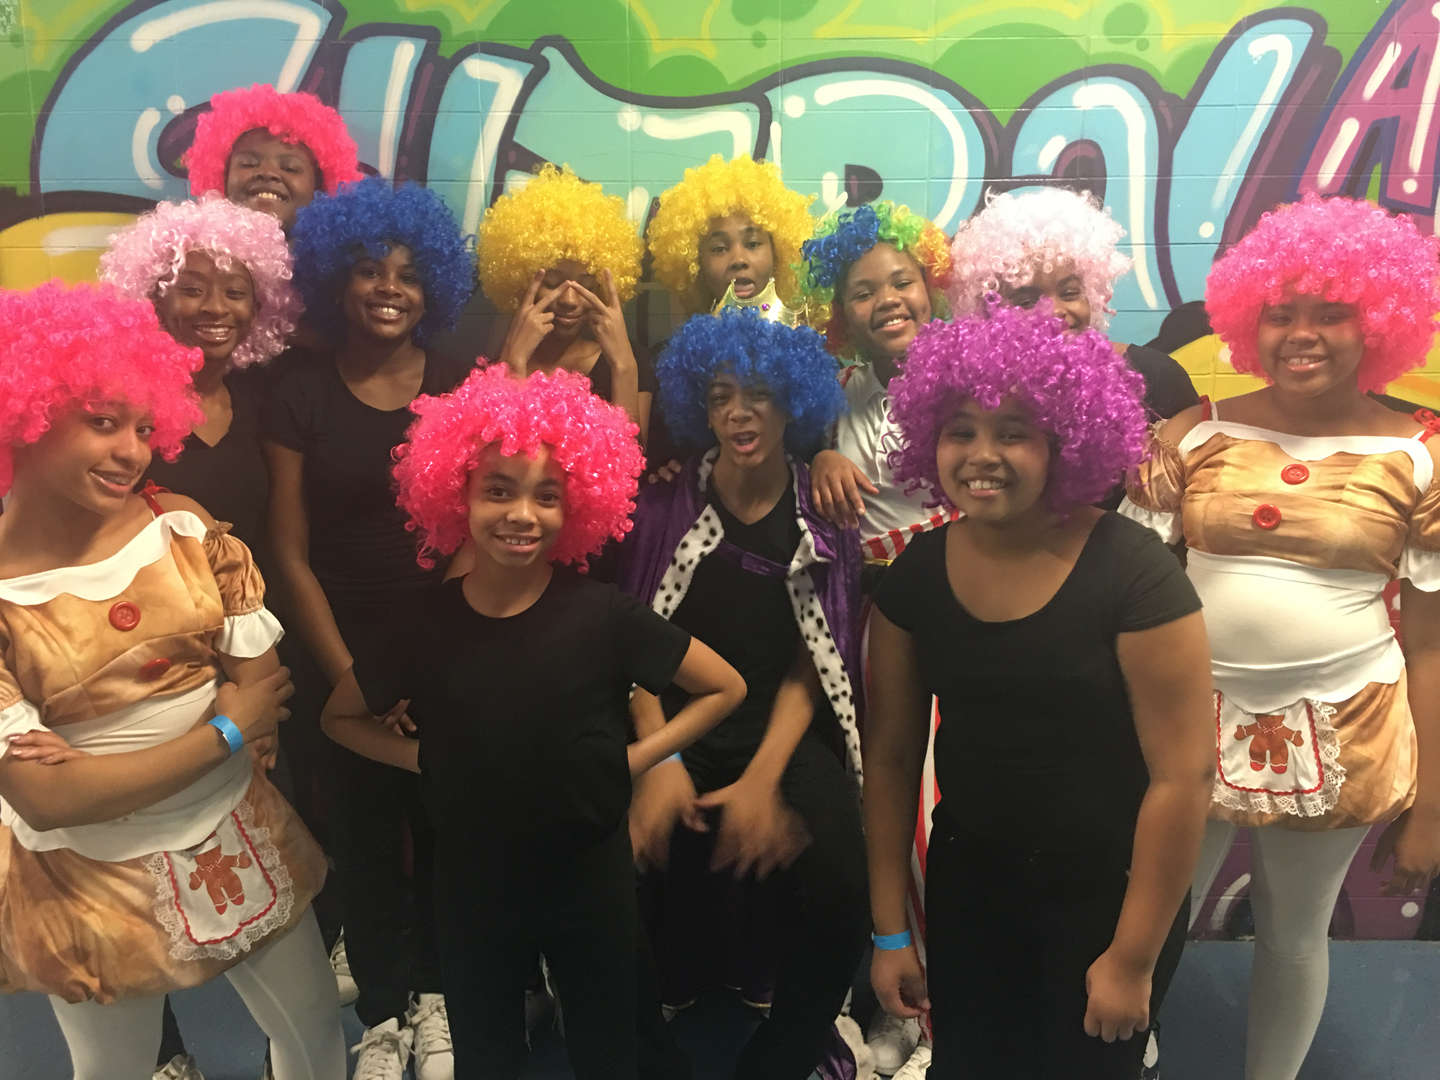 Students with colorful wigs on